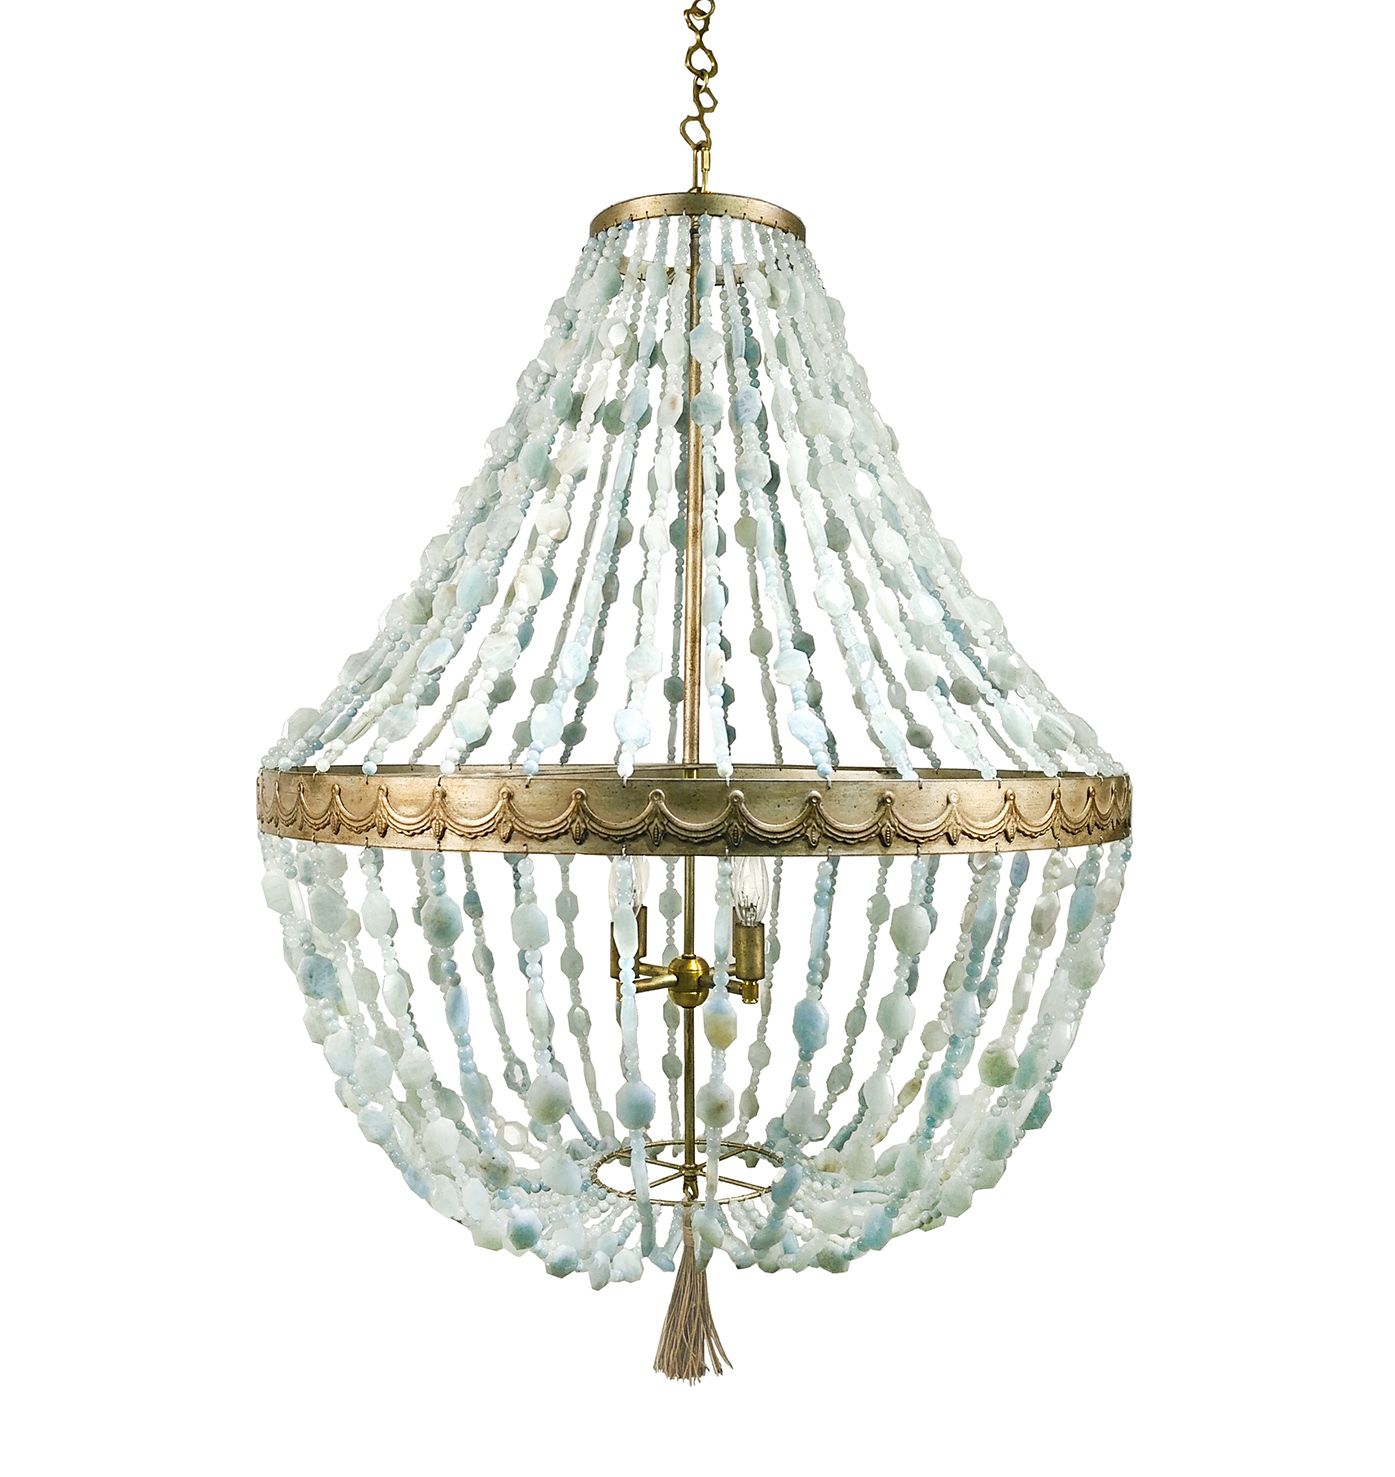 Lighting, Shabby Chic Lamps, Home Decor